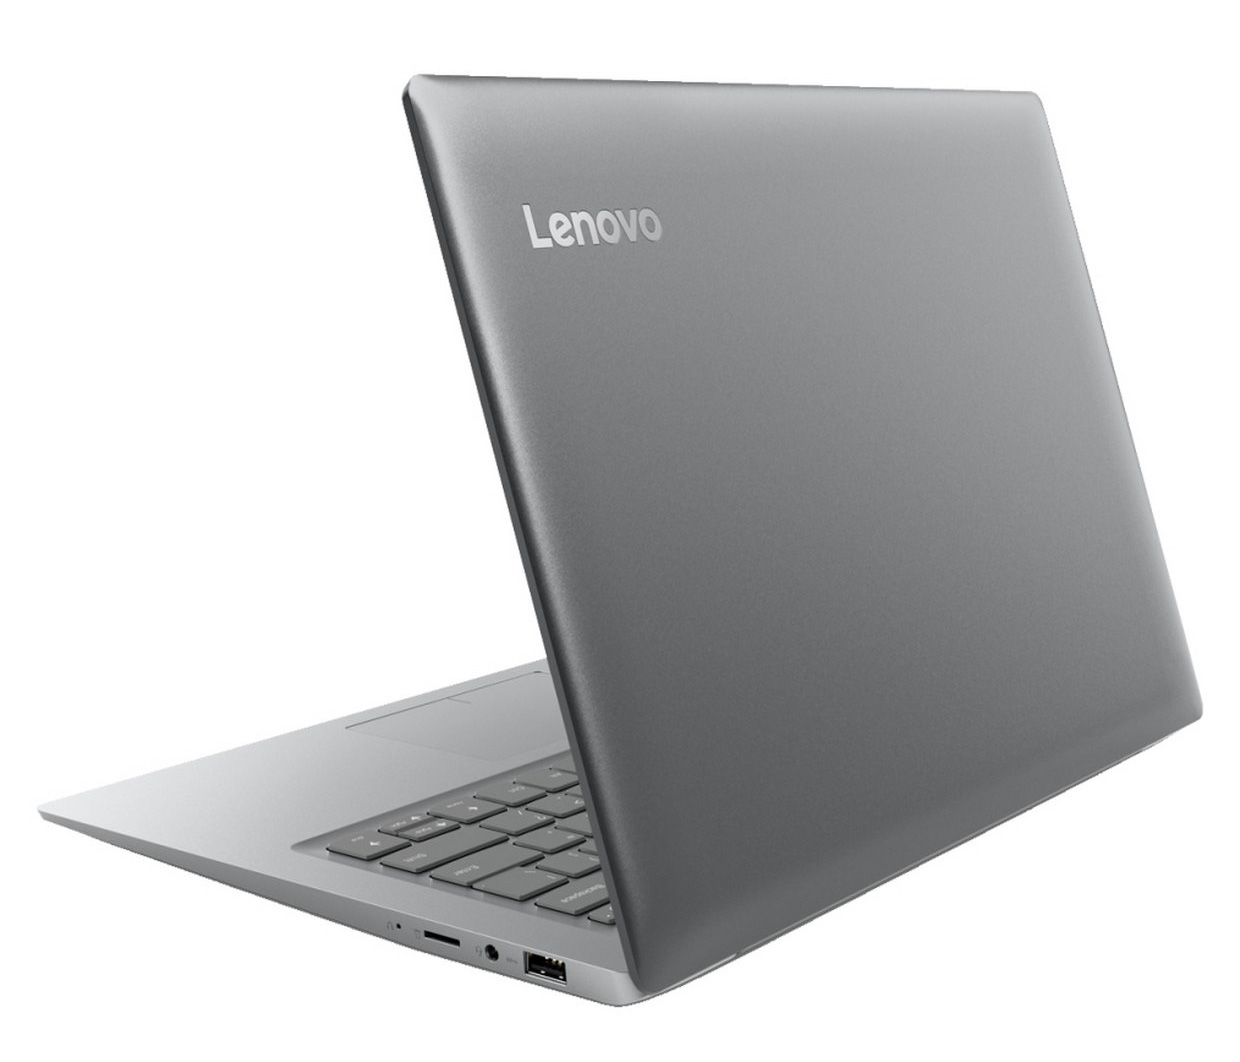 Lenovo IdeaPad 120S-14IAP Specs and Details